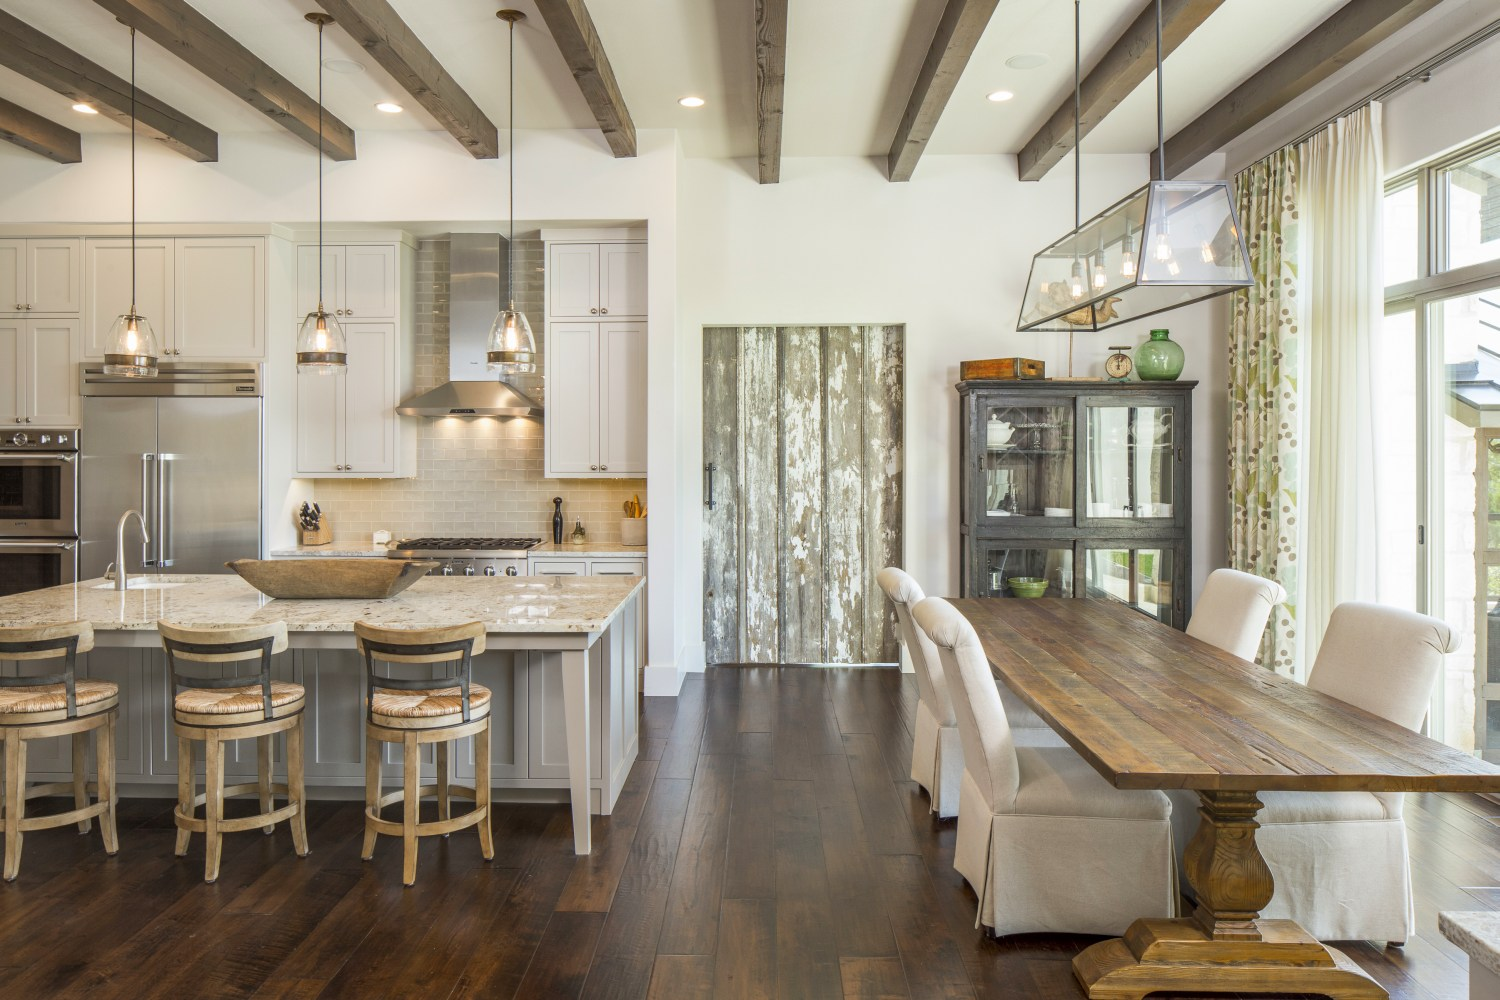 Architecture-Home-Contemporary-European-Farmhouse-34-Dining-Kitchen.jpg